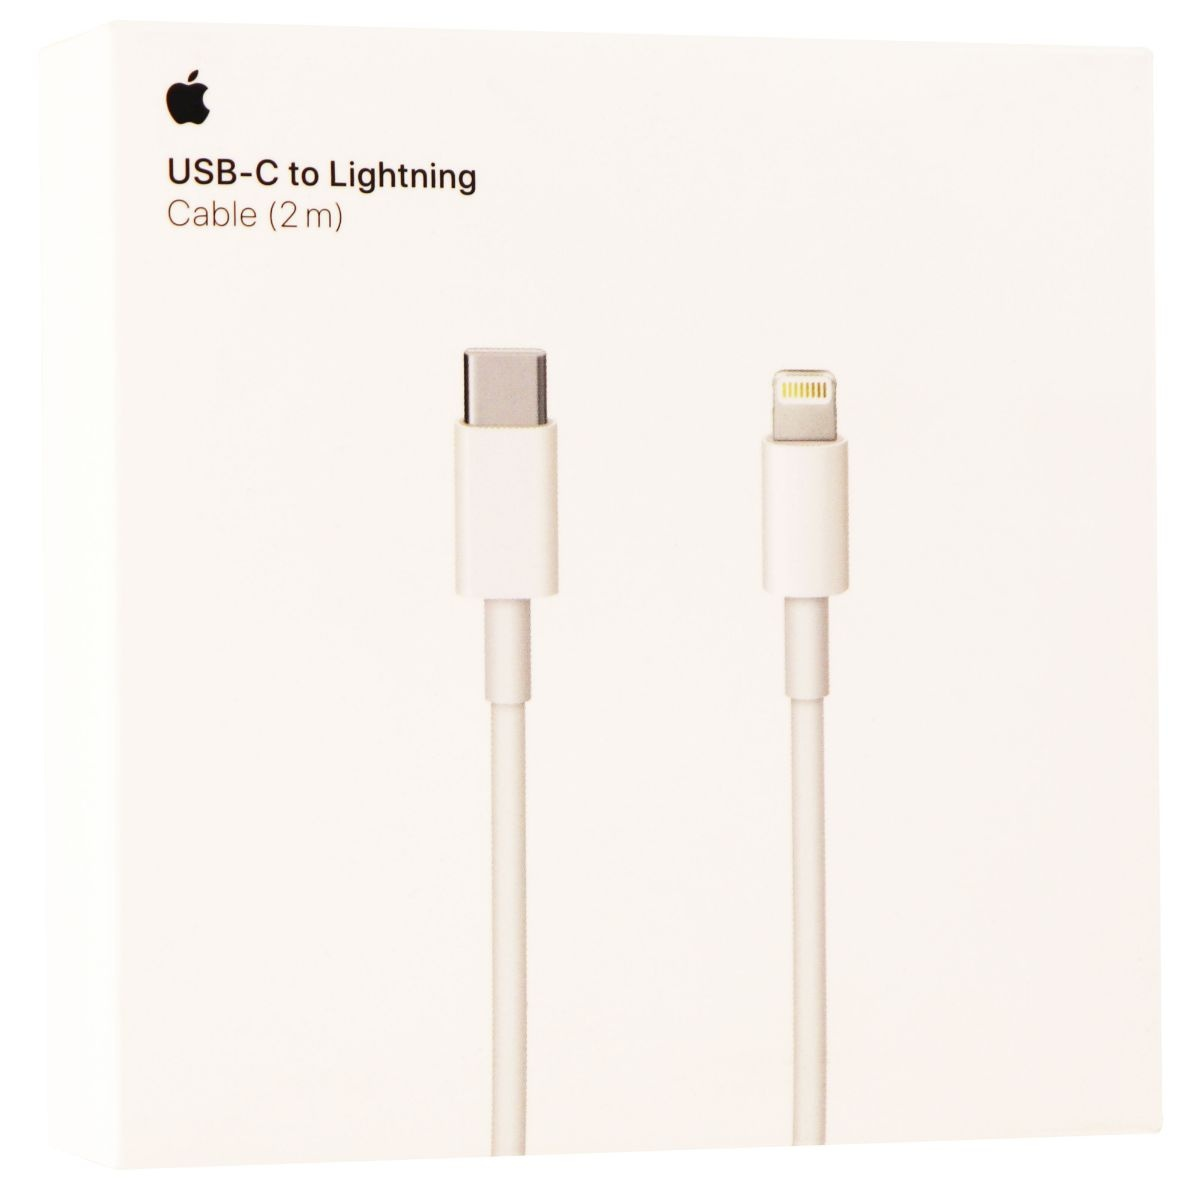 Apple USB Type C to Lightning Cable Data Cable Adapter (2 meter) - White